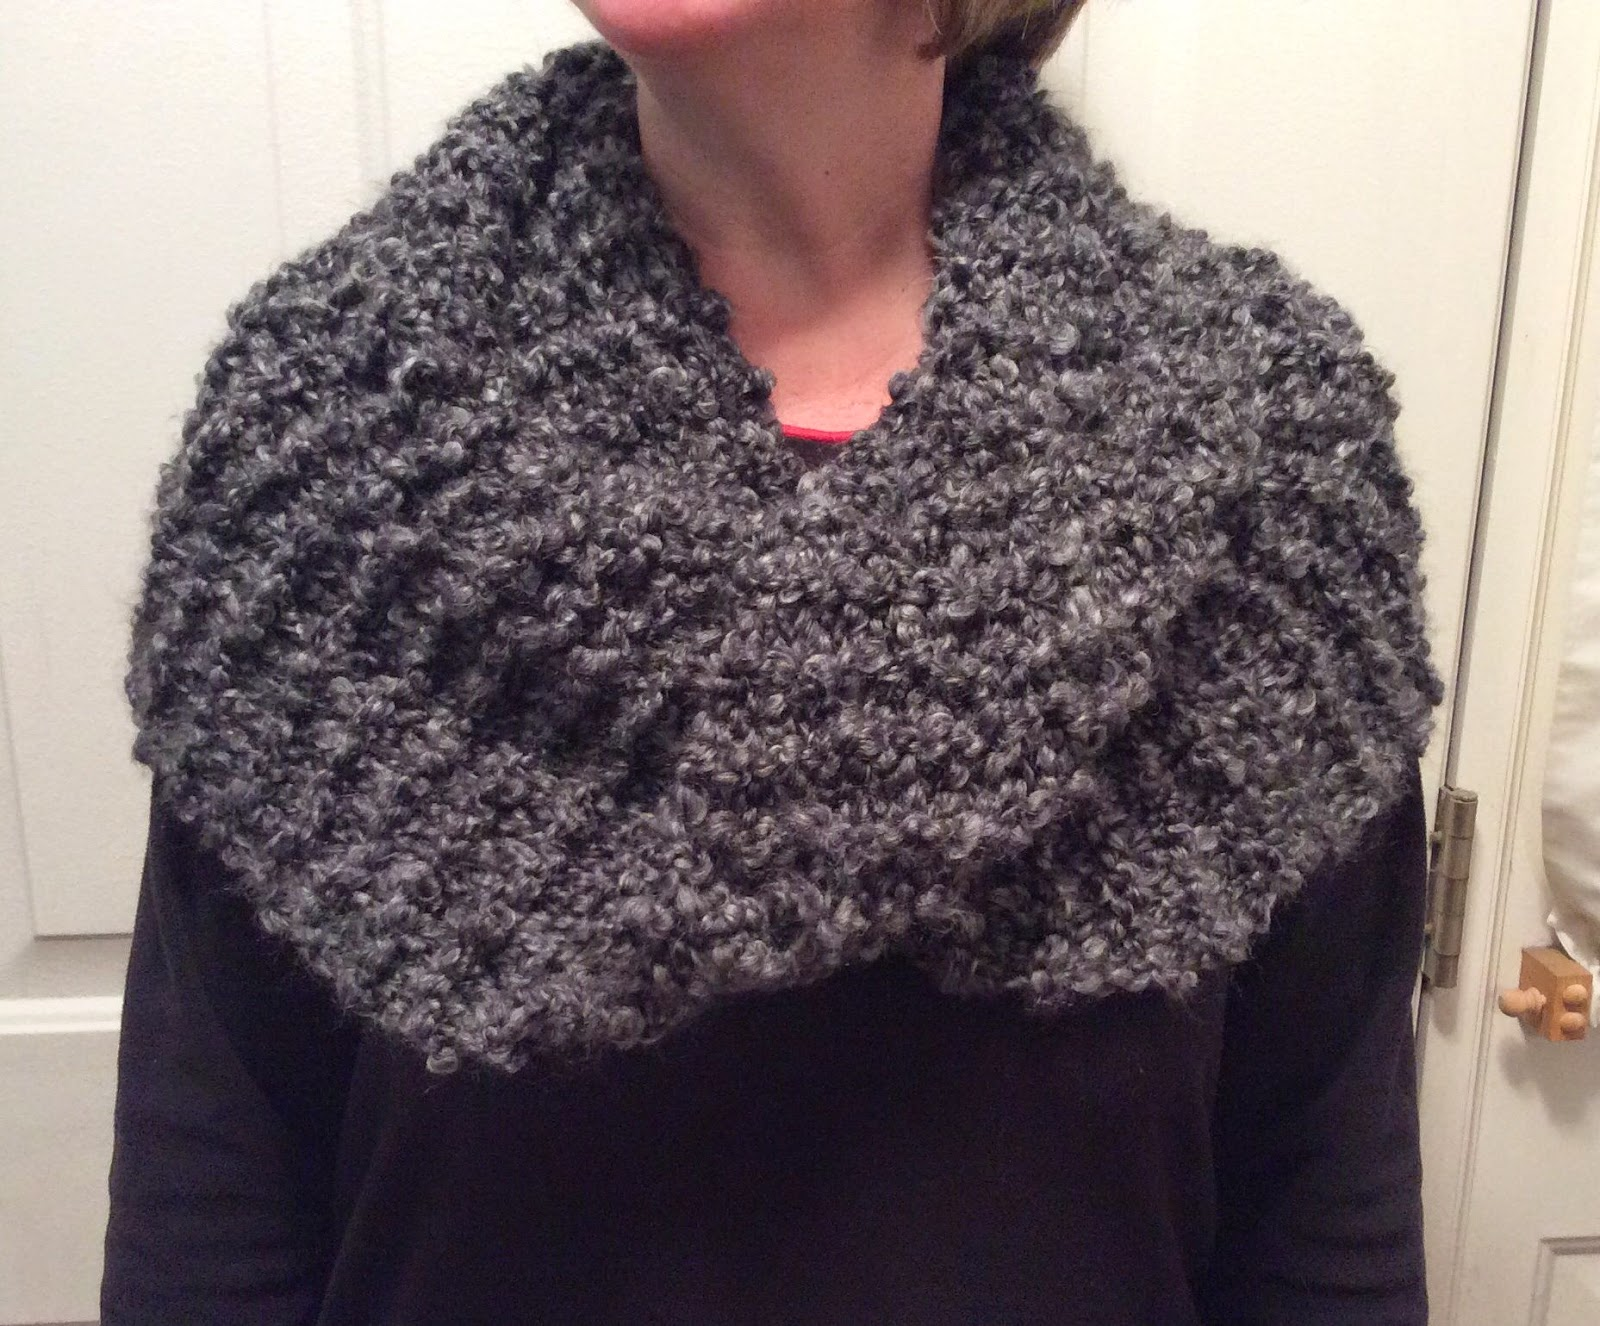 Knitting with Schnapps: Schnapp\'s Mobius Shawl!